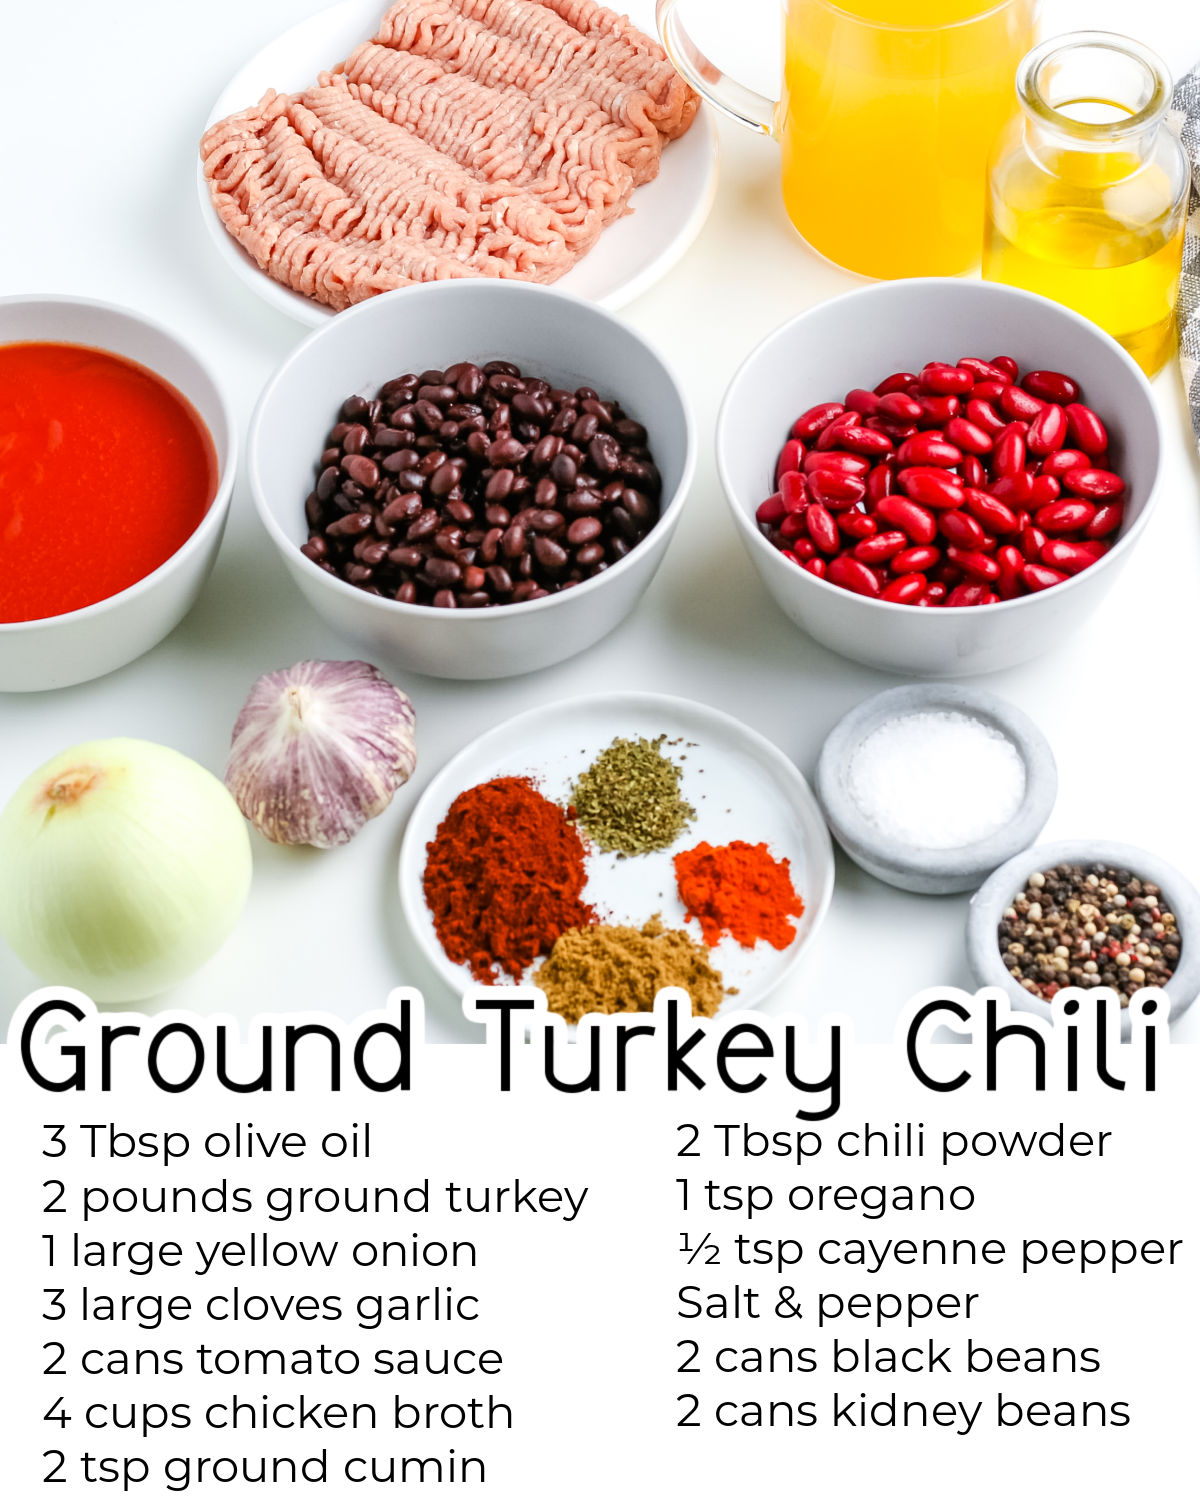 All of the ingredients needed to make this Ground Turkey Chili recipe.